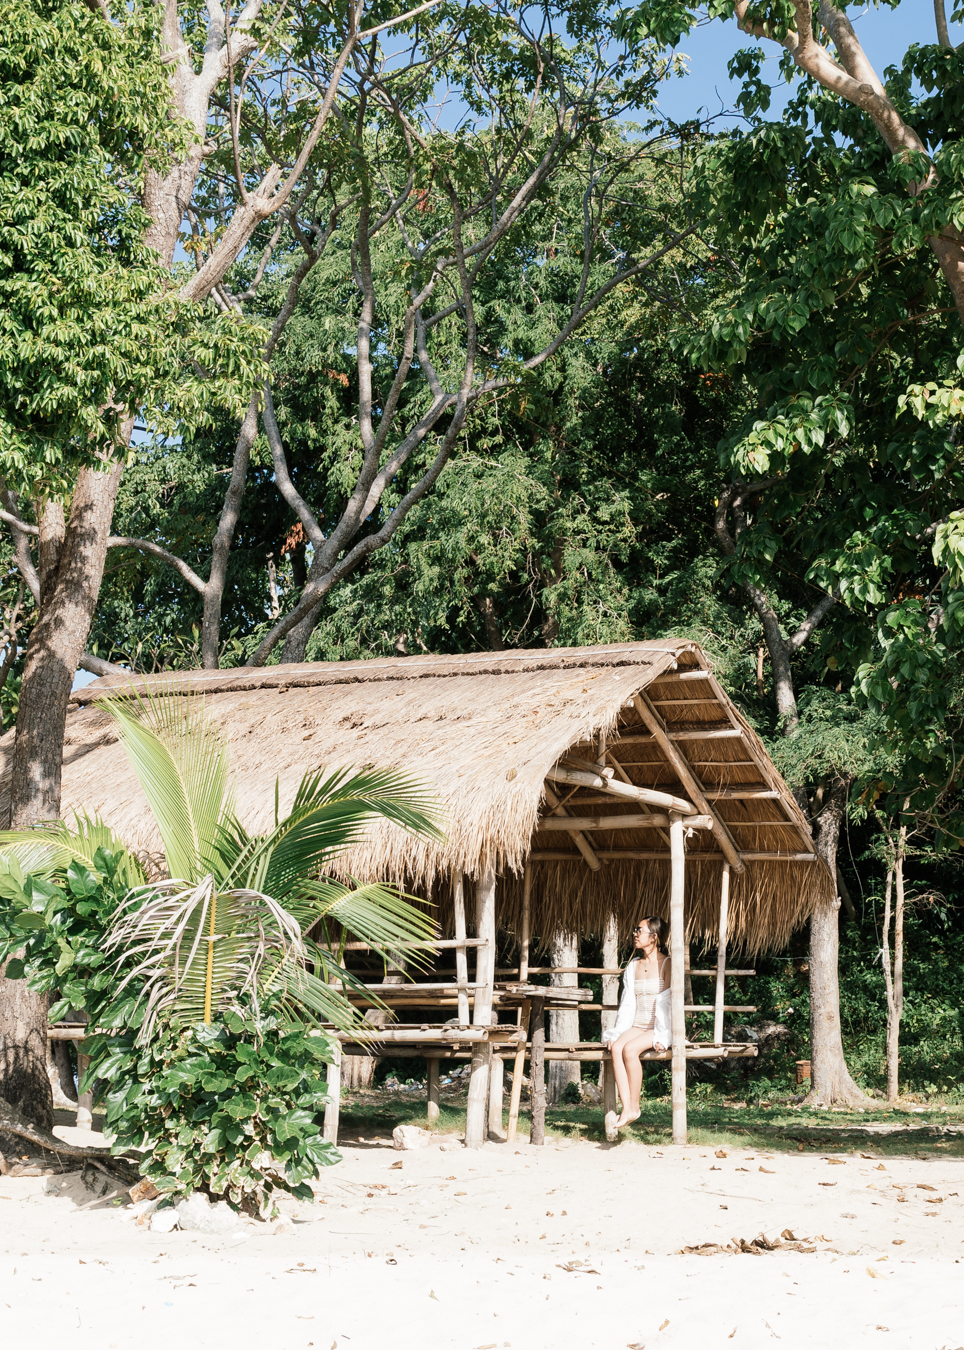 Resting in the  kubo ( Tagalog word for hut)